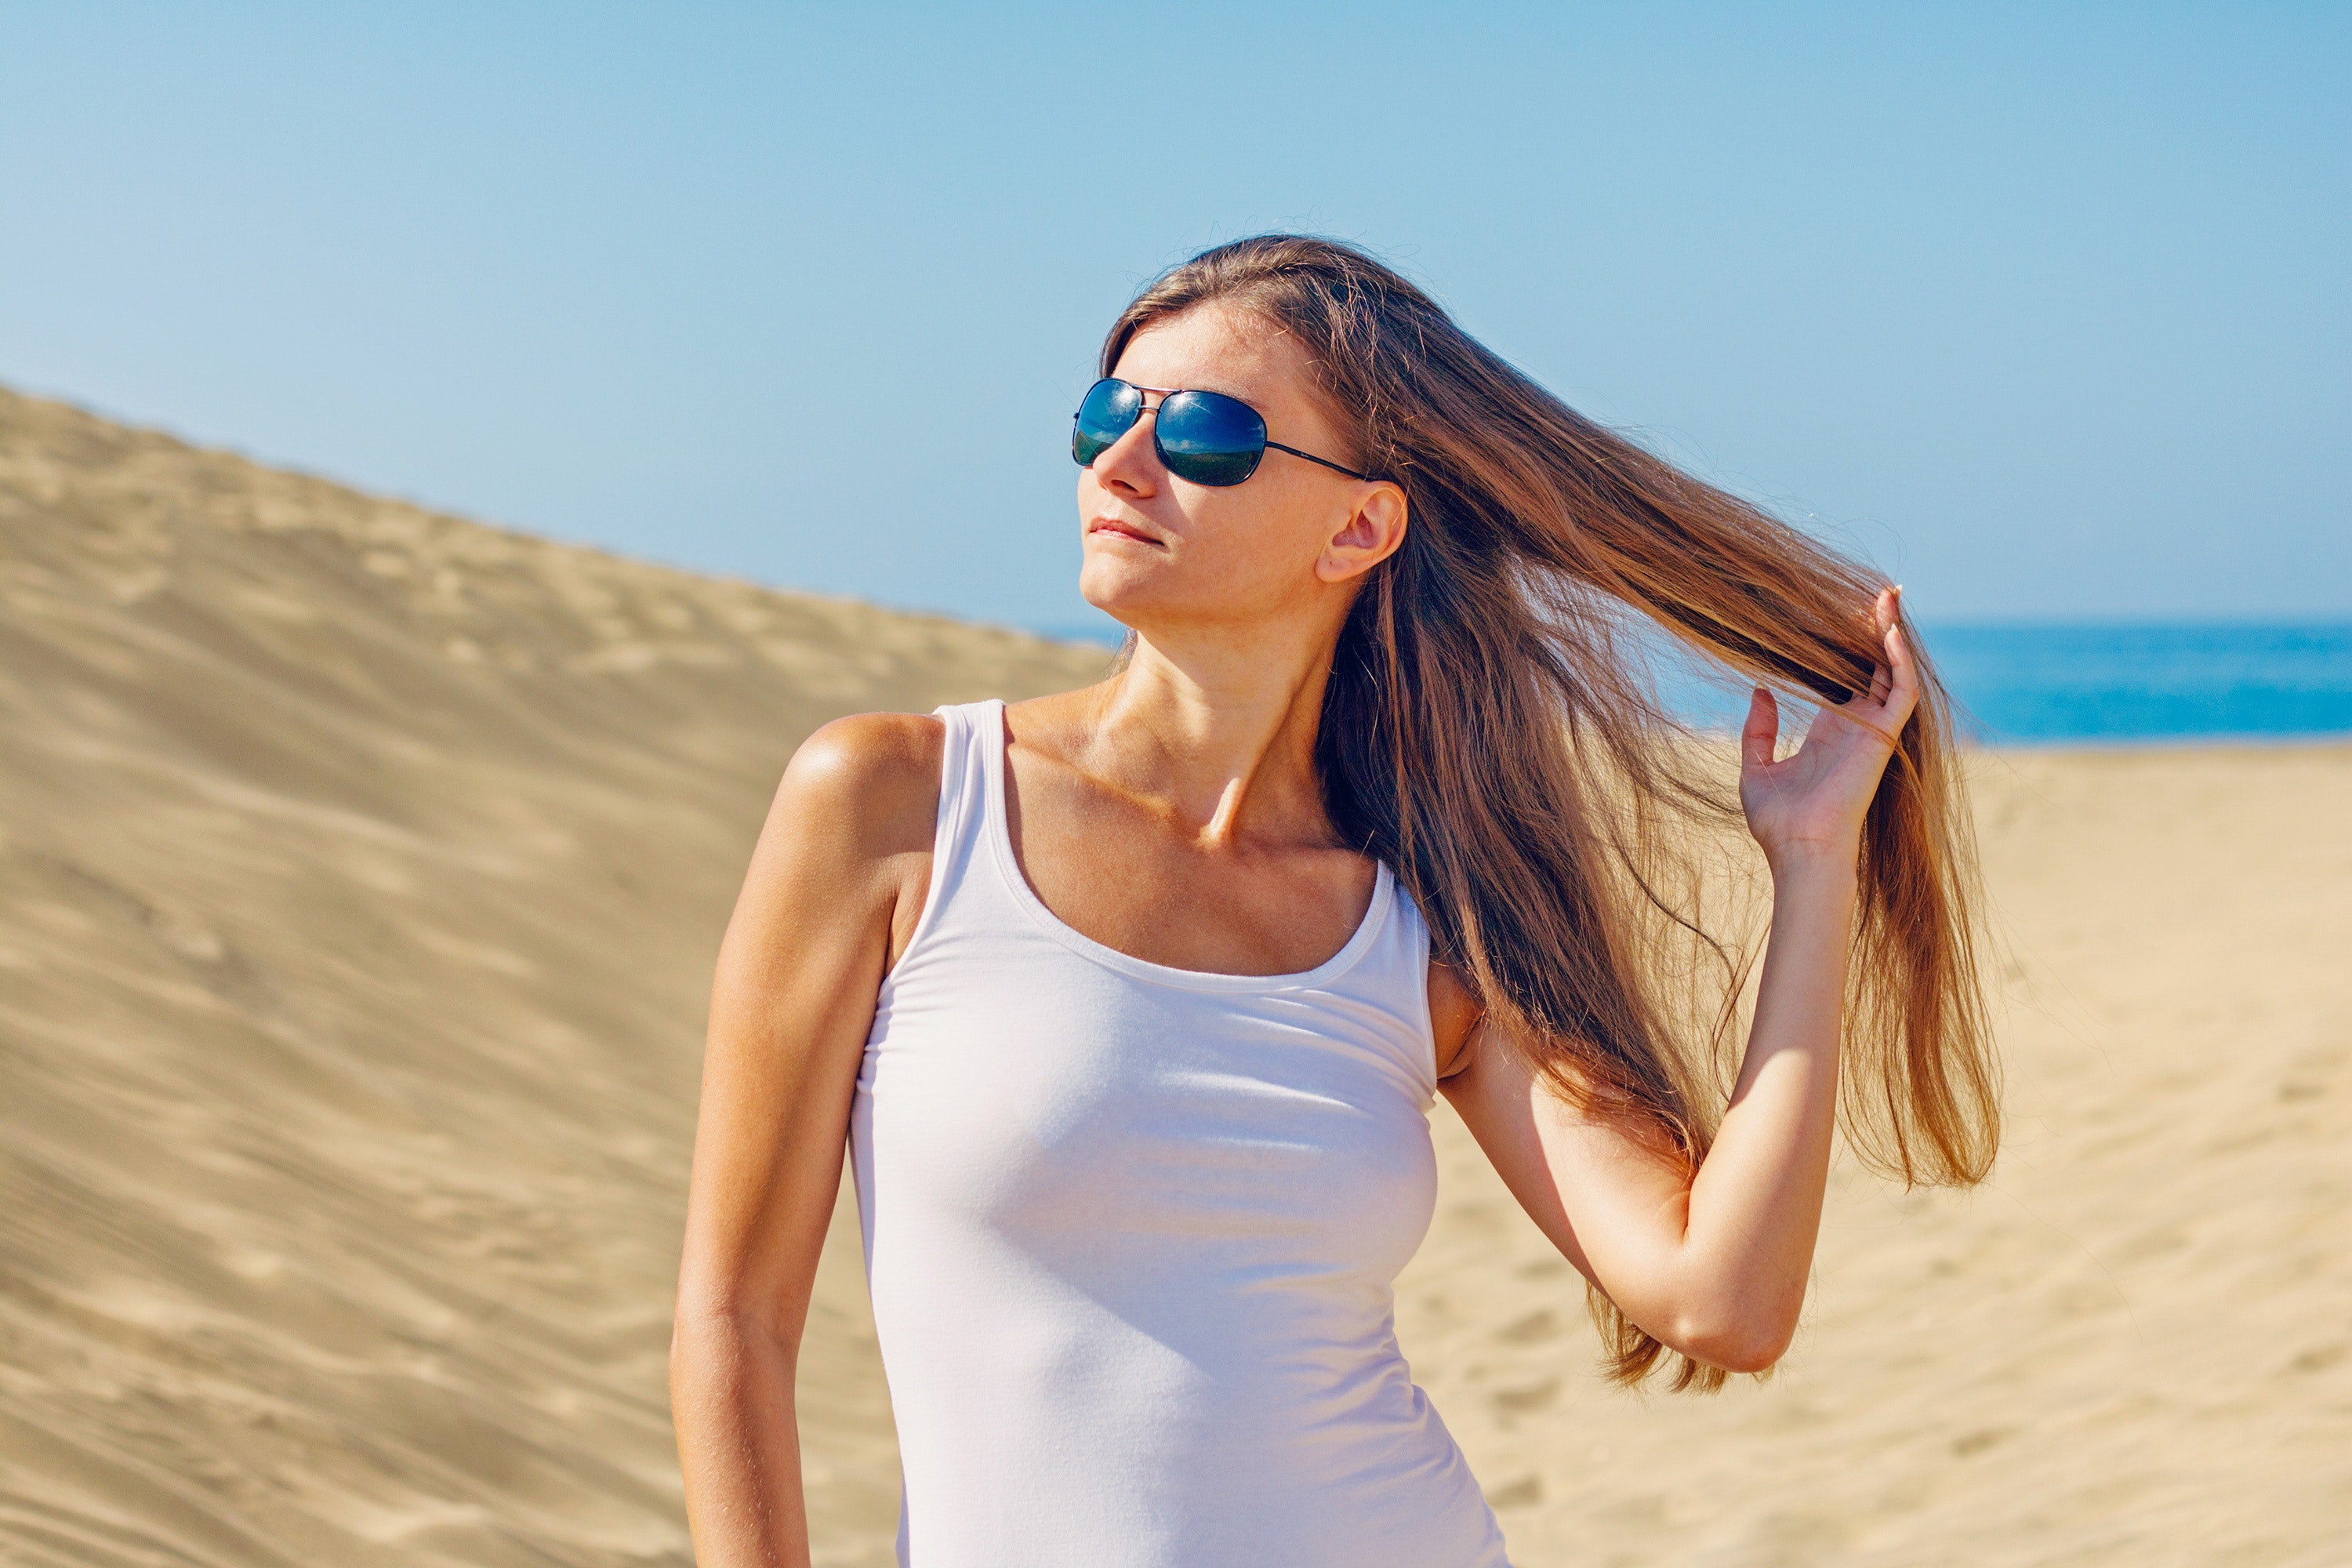 Woman wearing sunglasses at beach photo